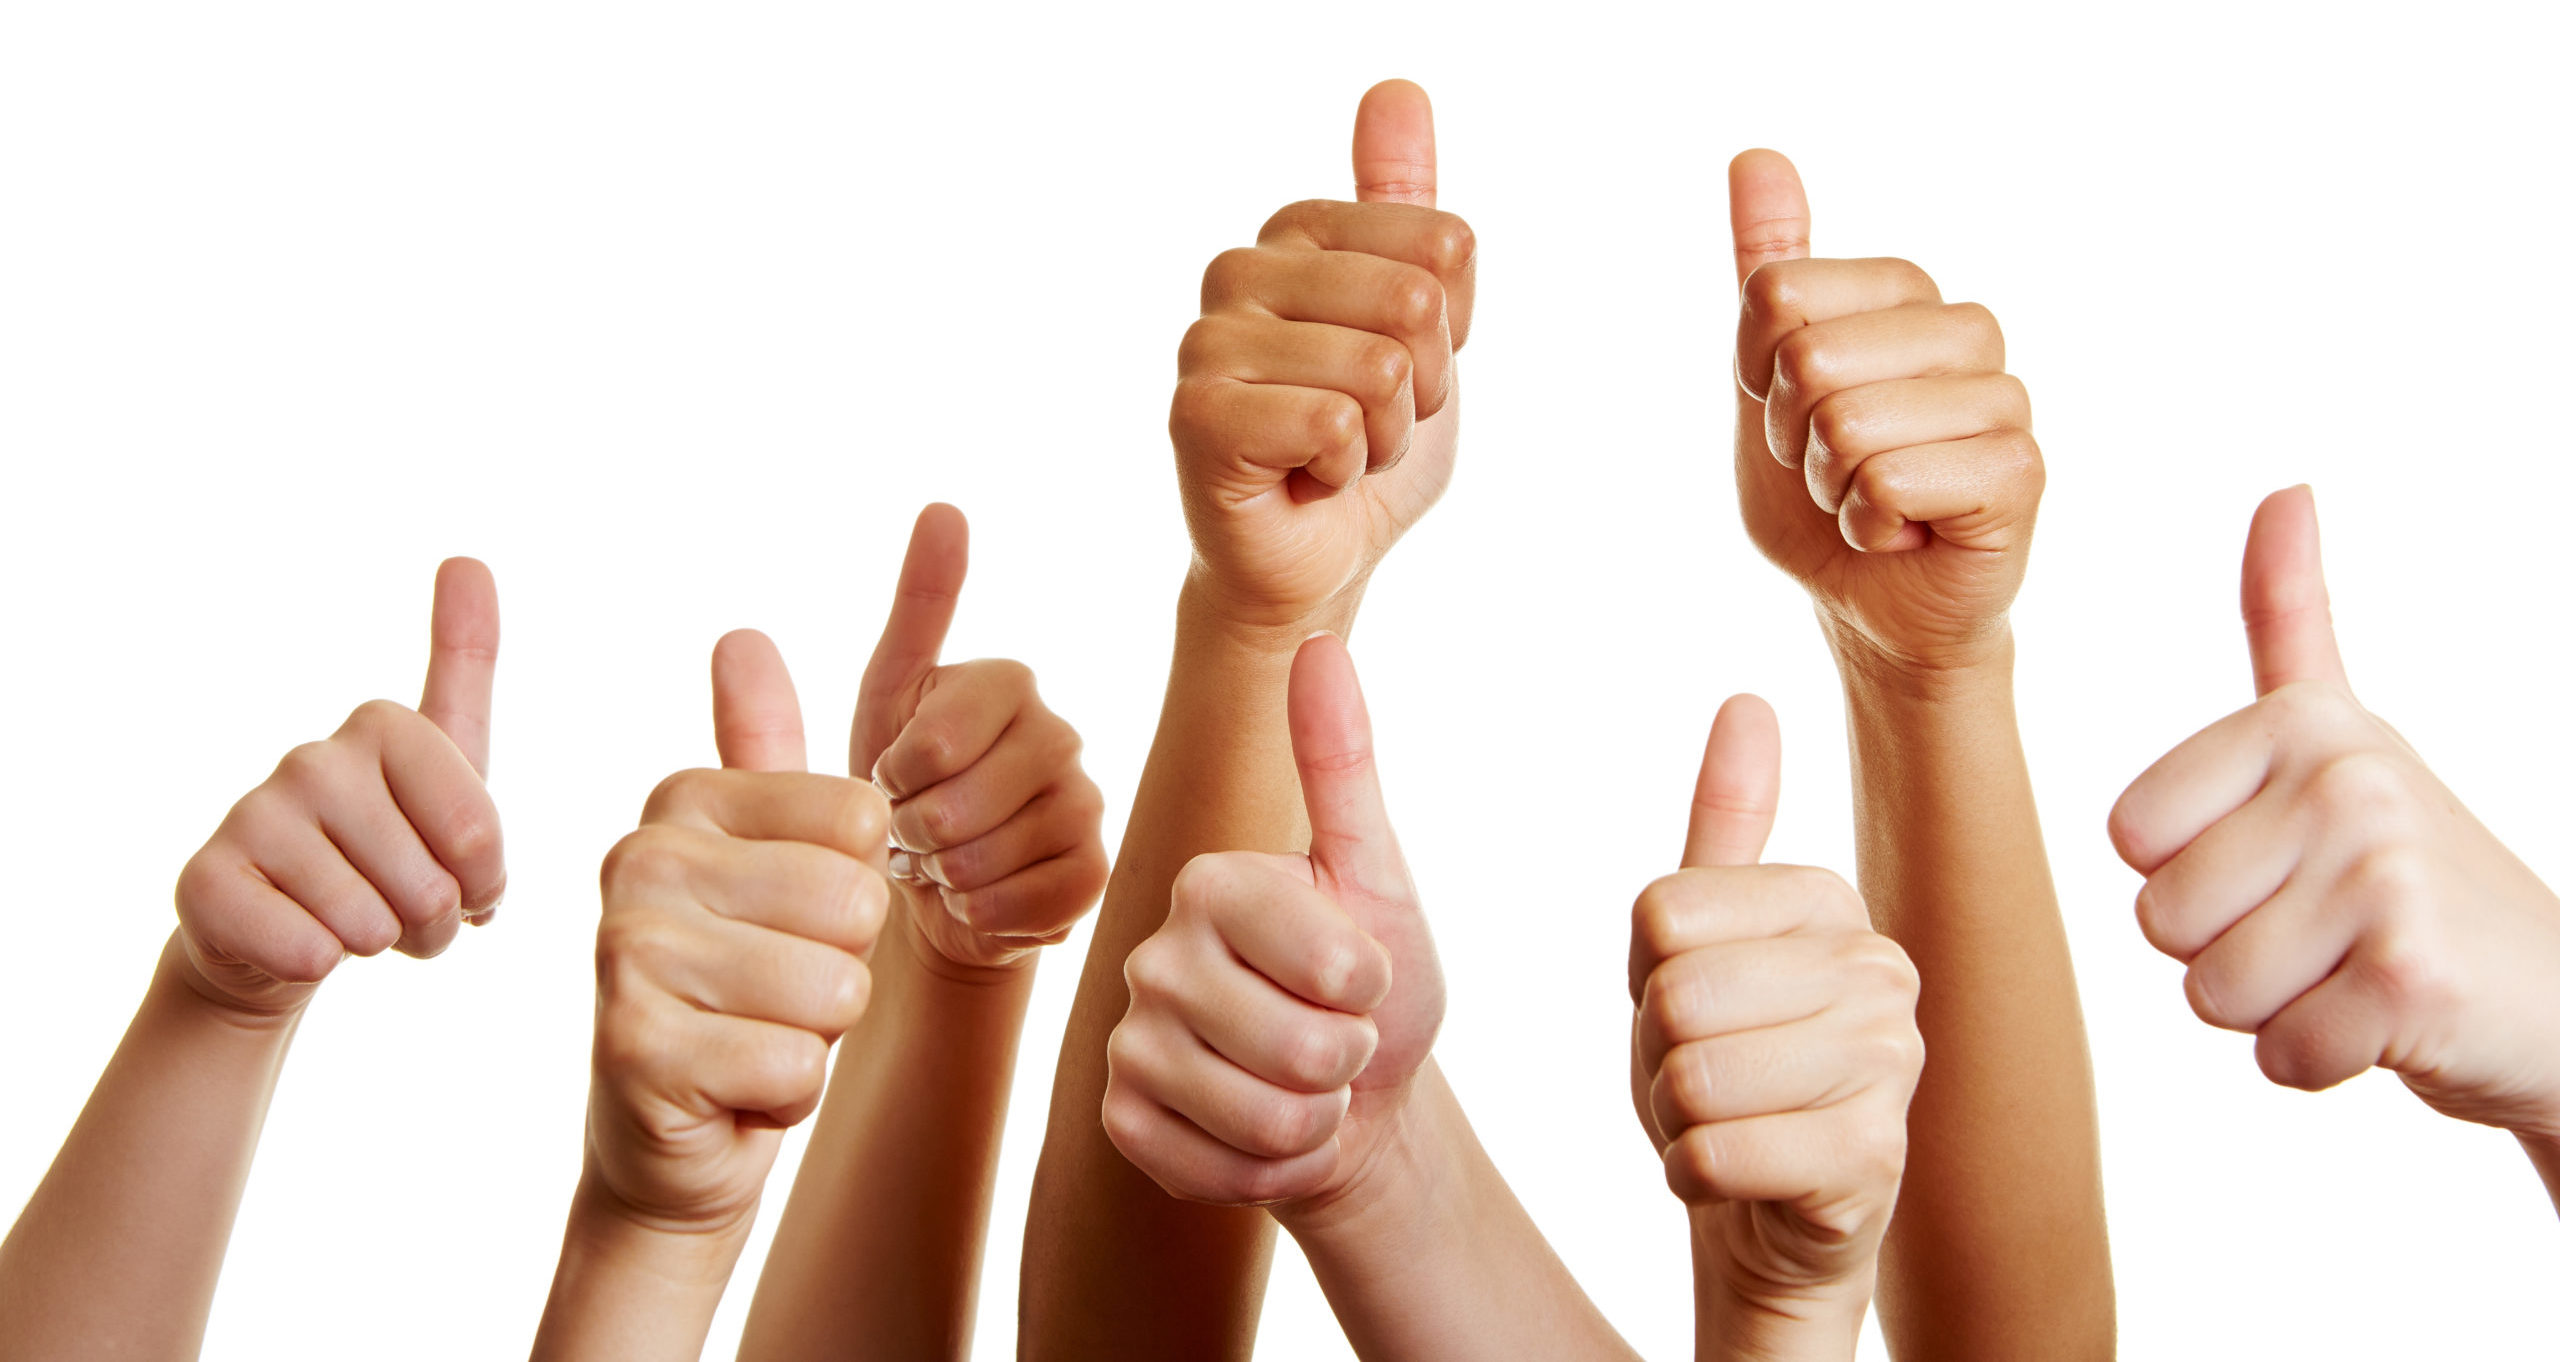 Thumbs Up to Stay Pain-Free By Treating Thumb Joint Pain - Charms